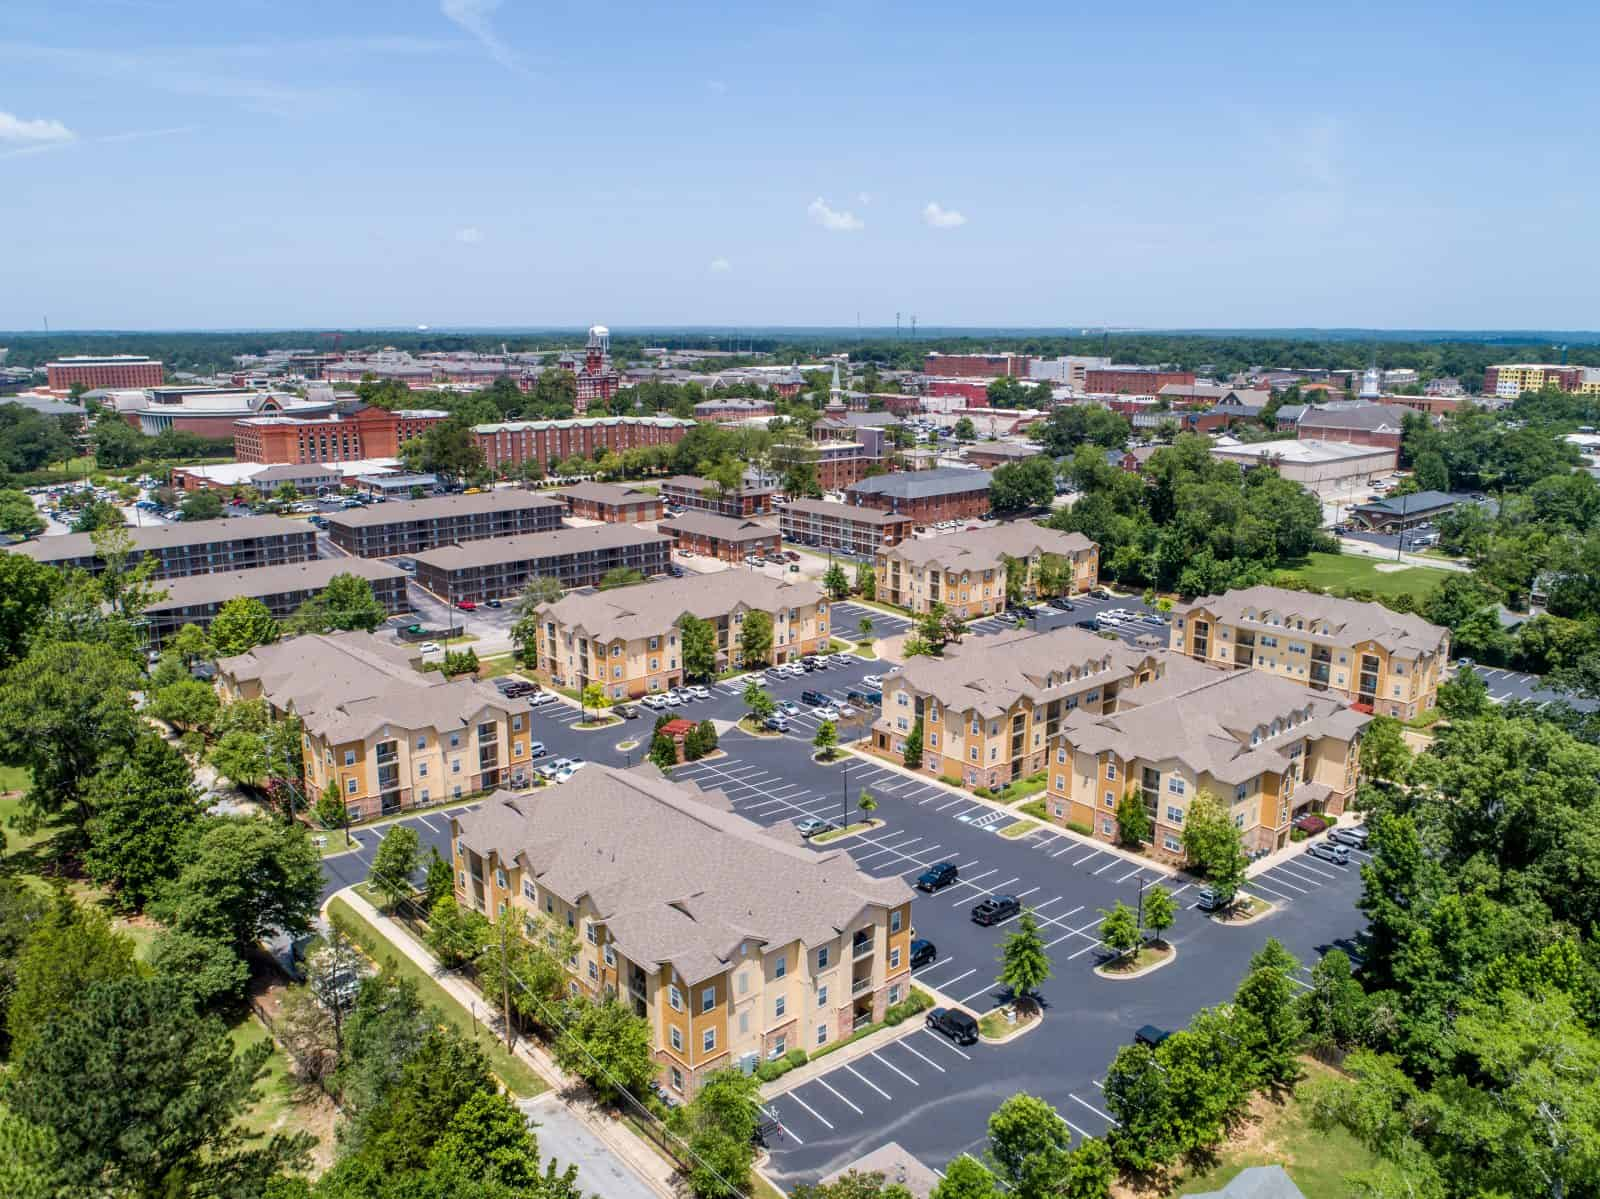 drone photo of apartment complex in Auburn, AL